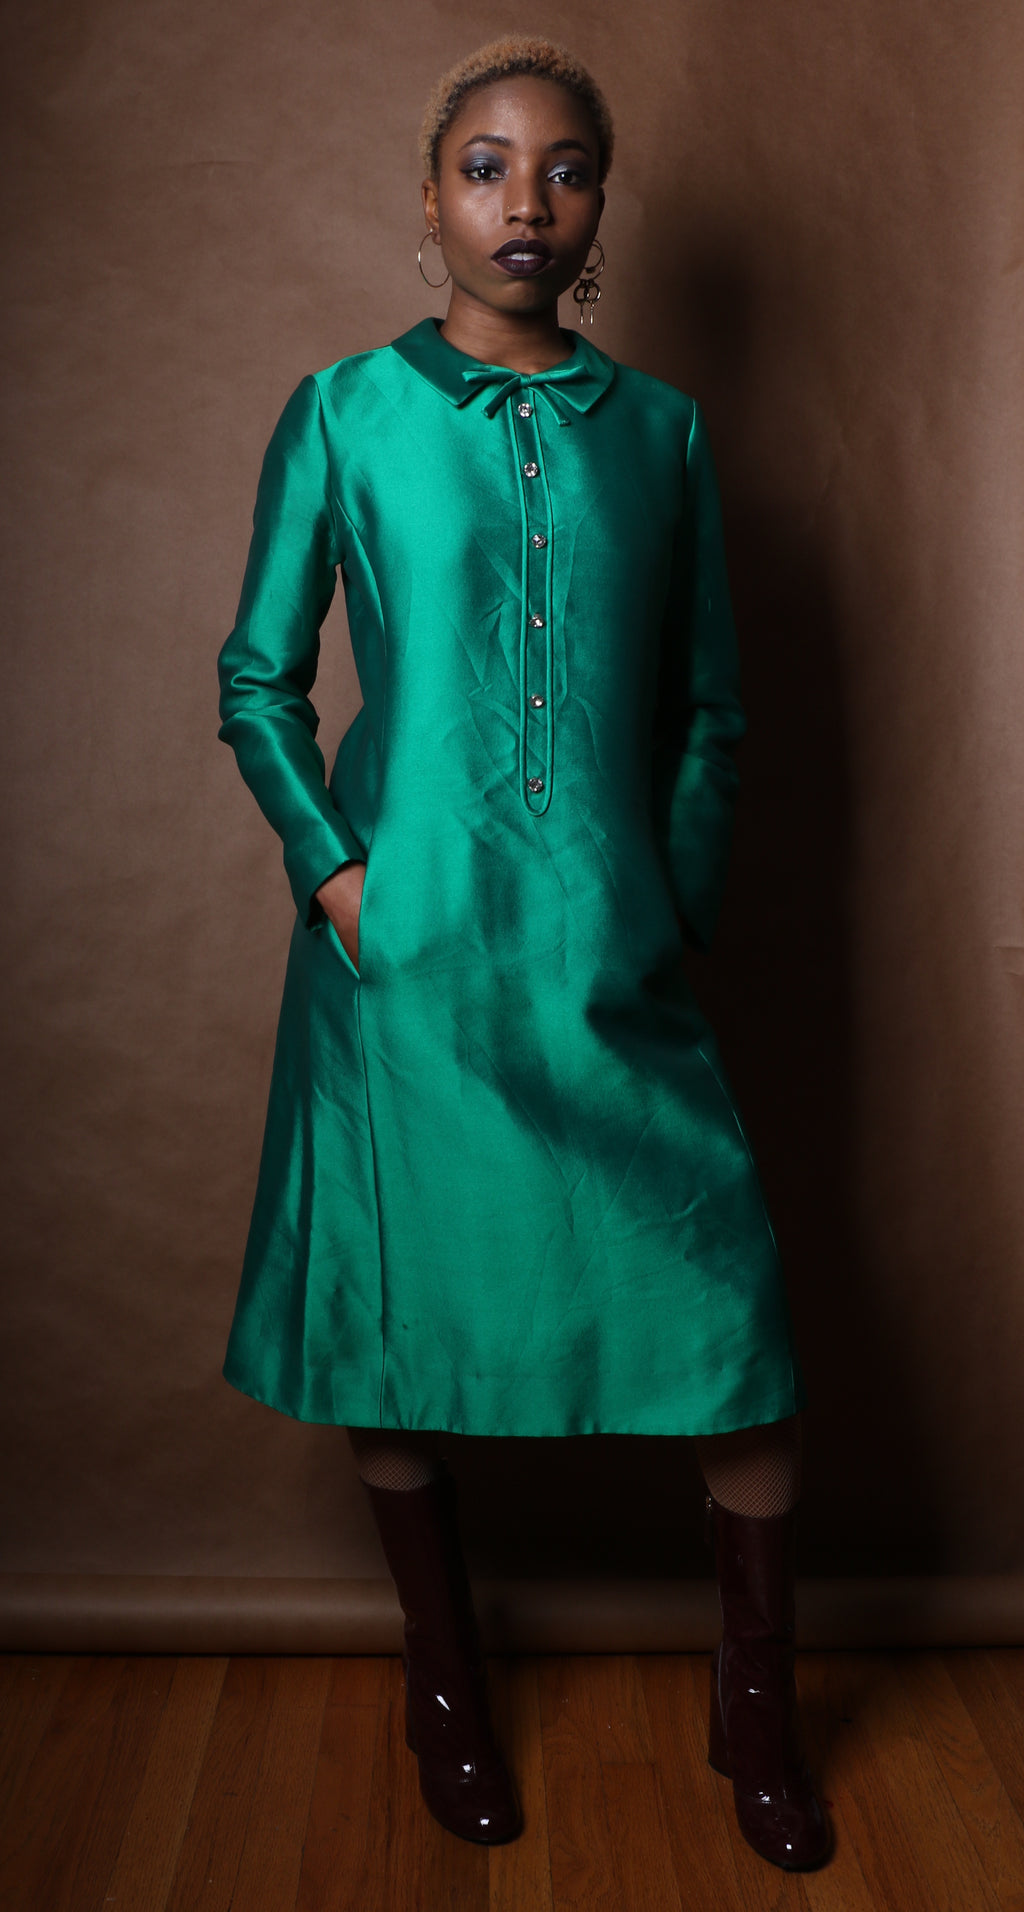 Emerald Green Tea Length Metallic Woven Shirt Dress w/ Rhinestone Buttons c. 1965